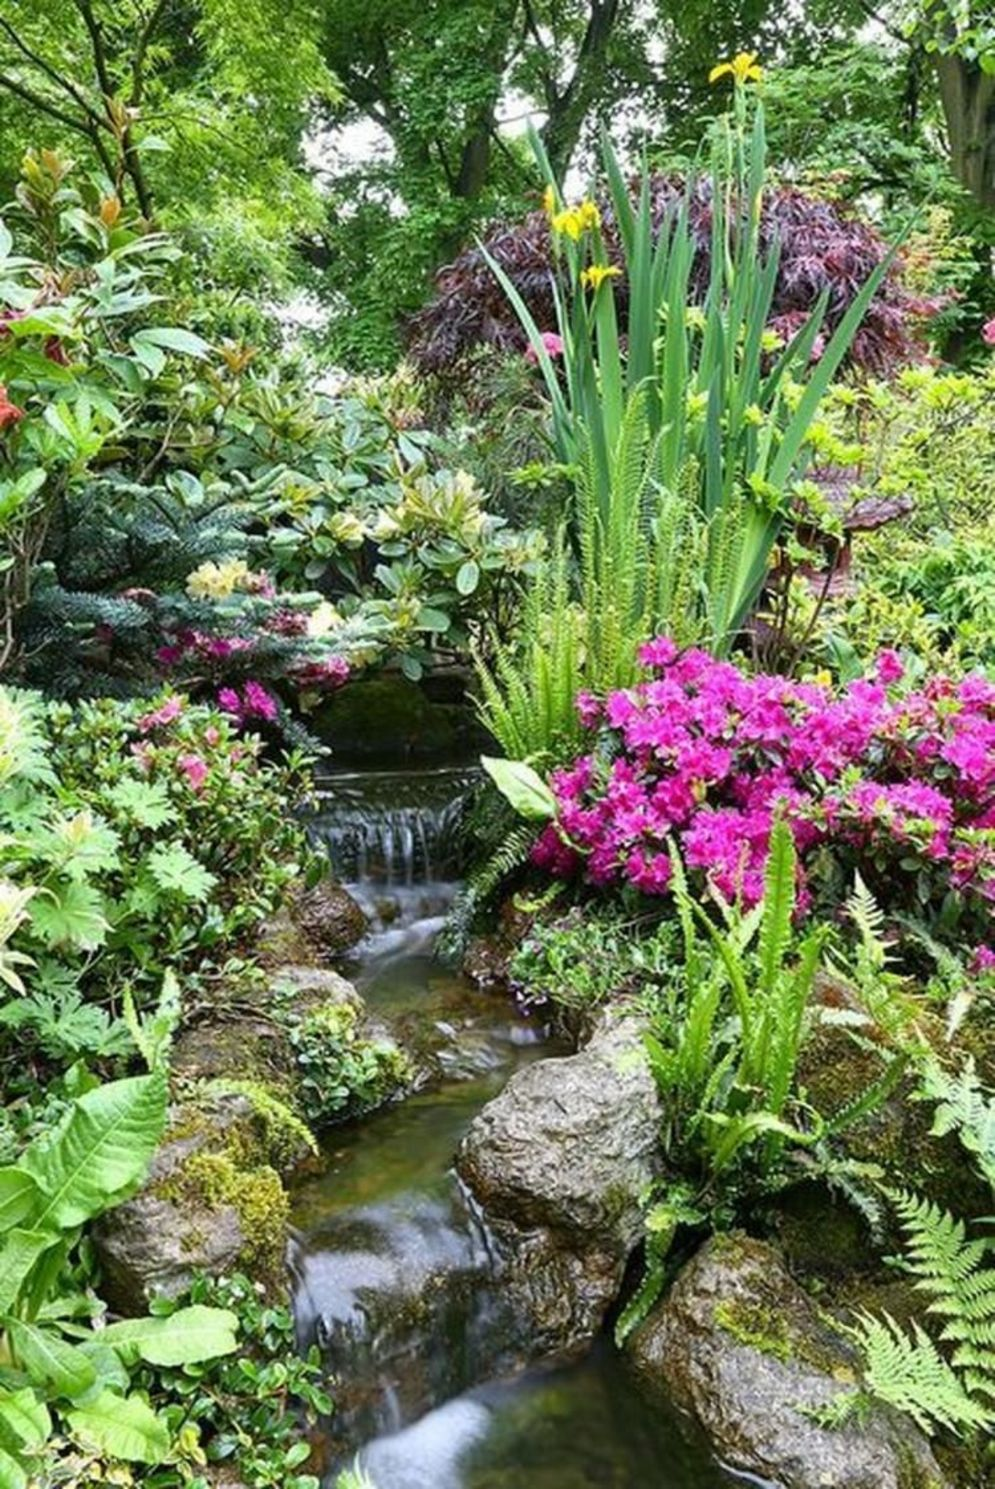 Best water garden style rich of natural accents with stones and aquatic plants compositions Image 14